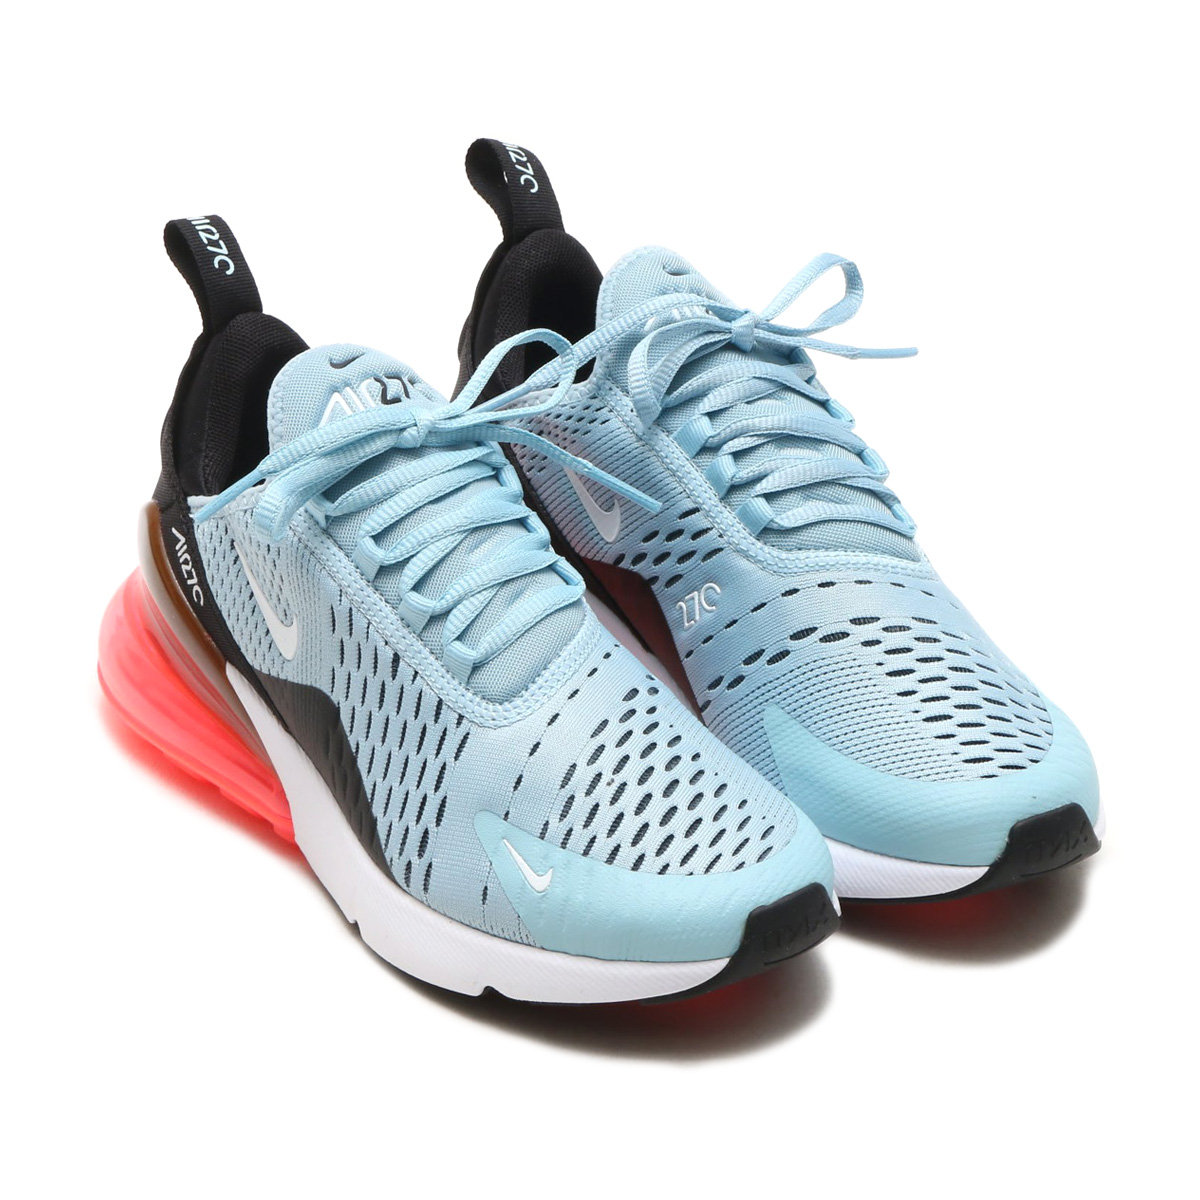 5af00b83f696 NIKE W AIR MAX 270 (Nike women Air Max 270) (OCEAN BLISS WHITE-BLACK-HOT  PUNCH) 18SP-S